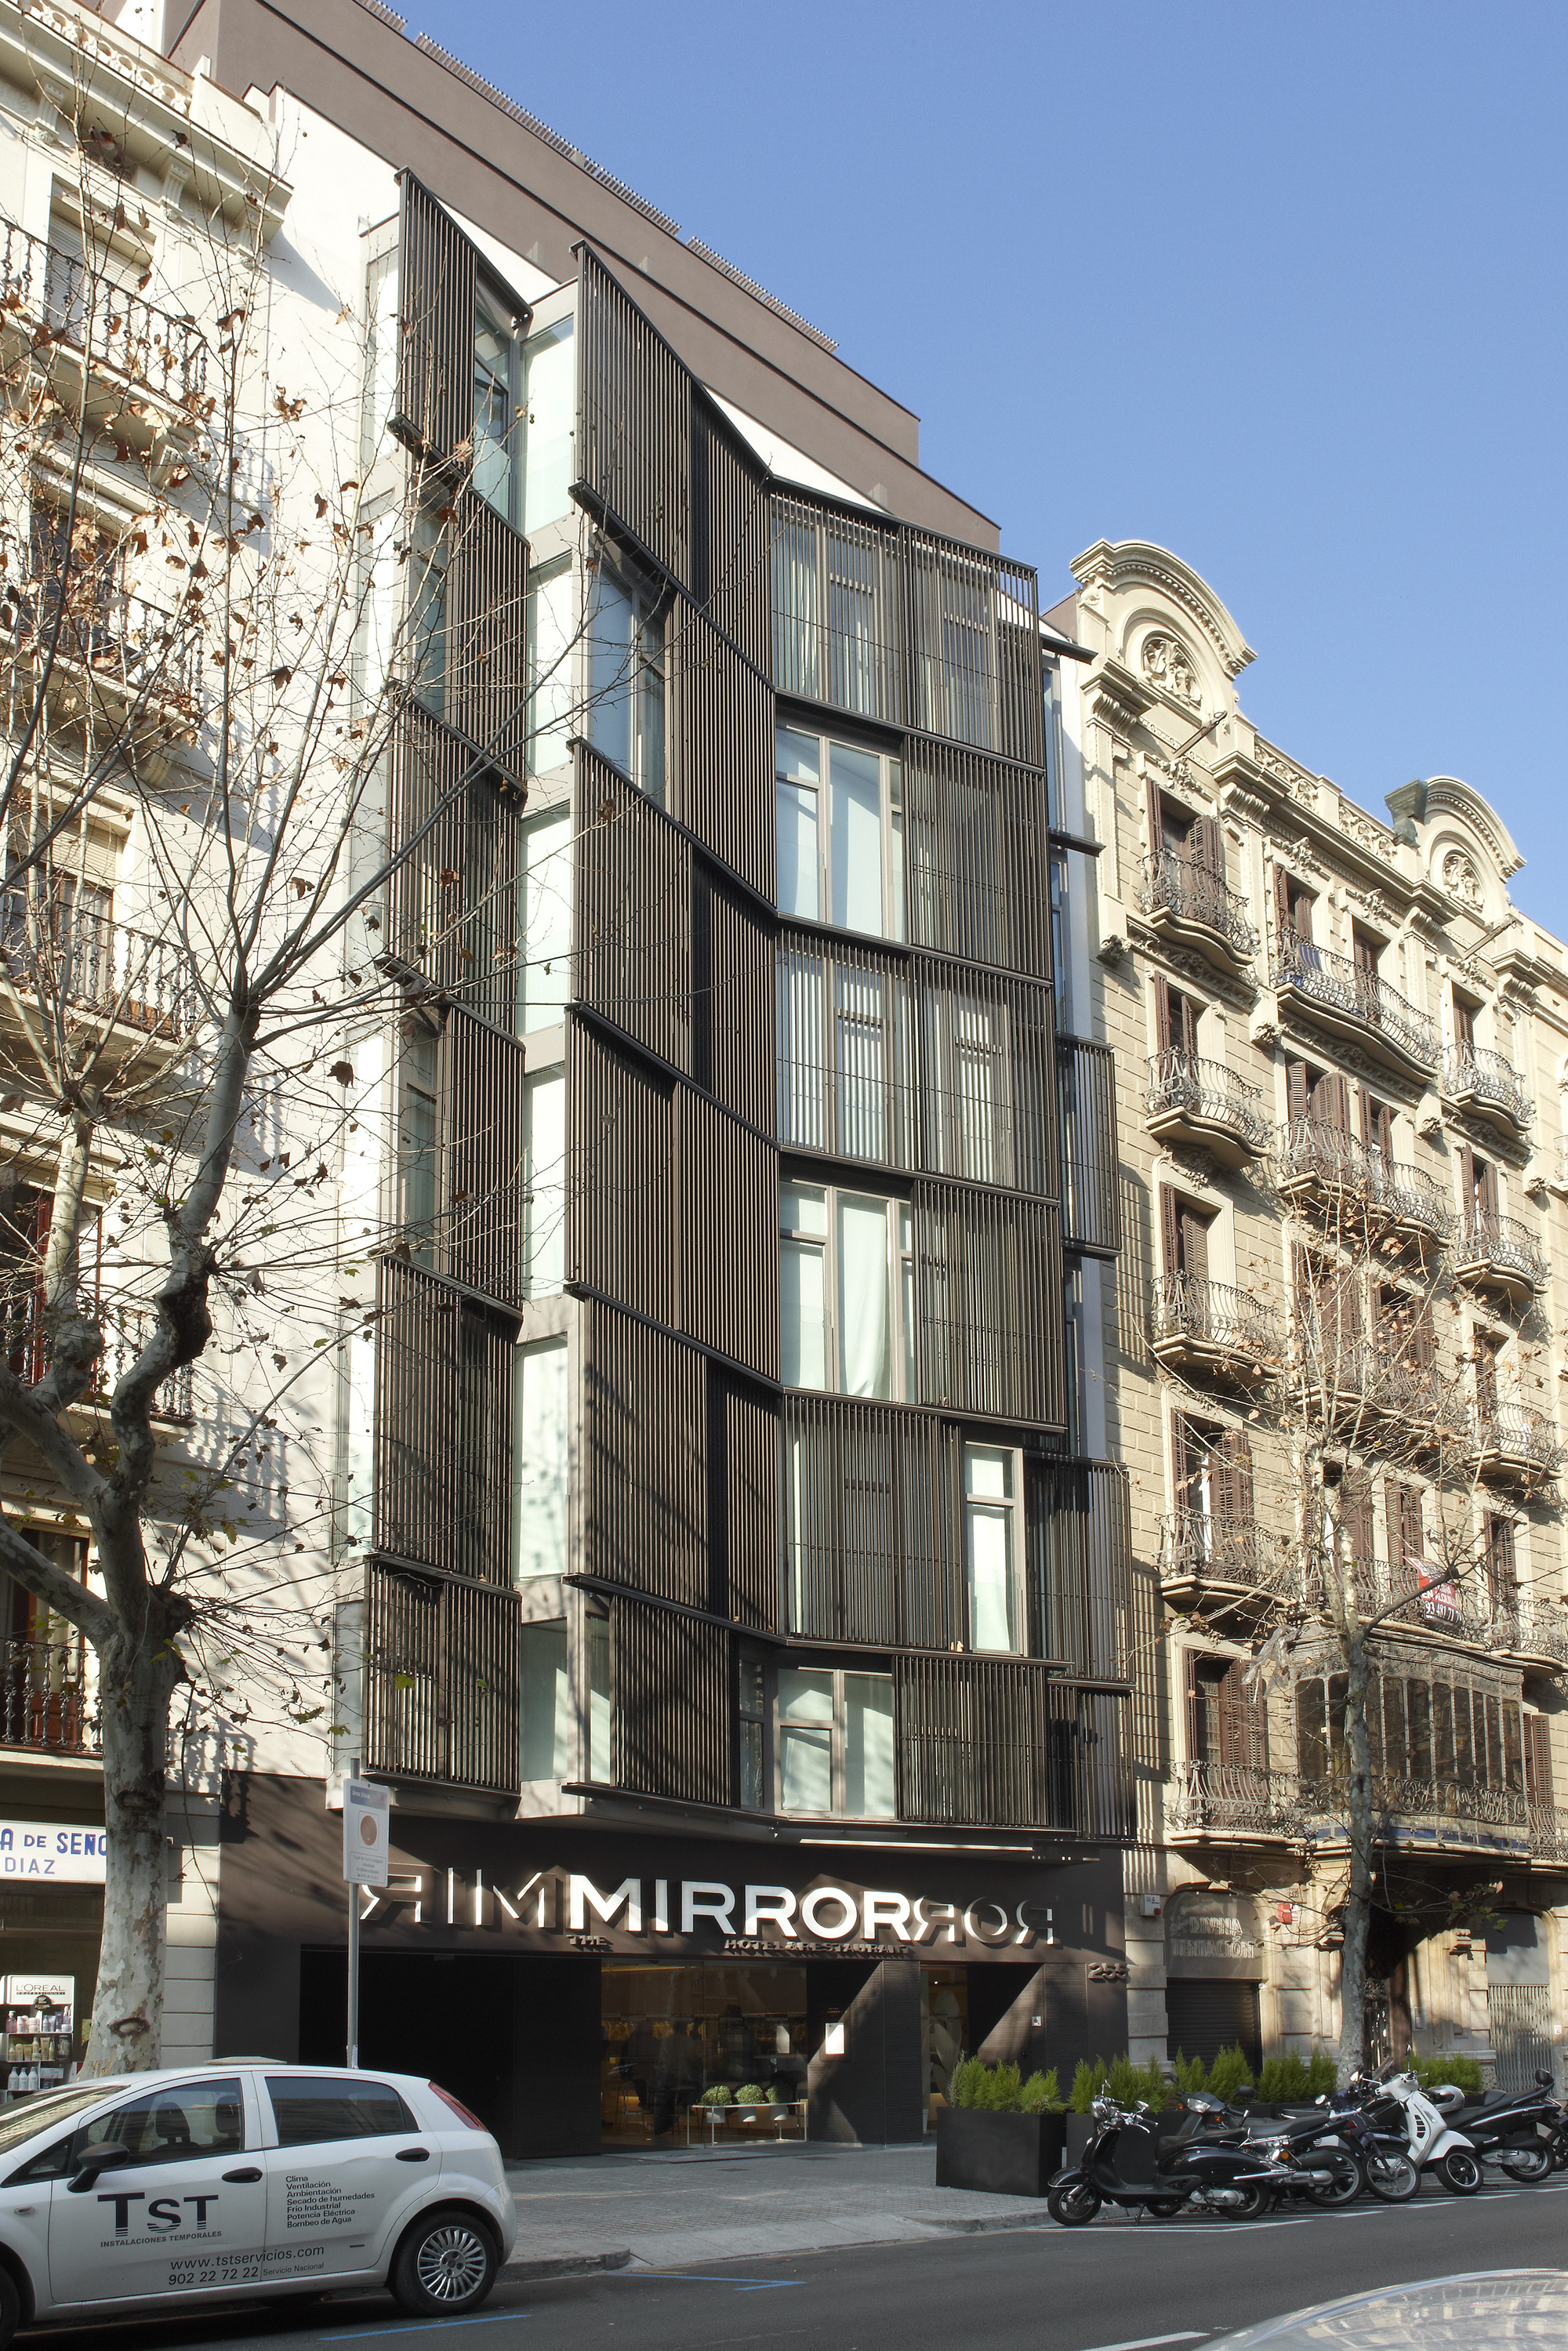 Gallery of hotel the mirror barcelona gca arquitectes 1 for Hotel the mirror